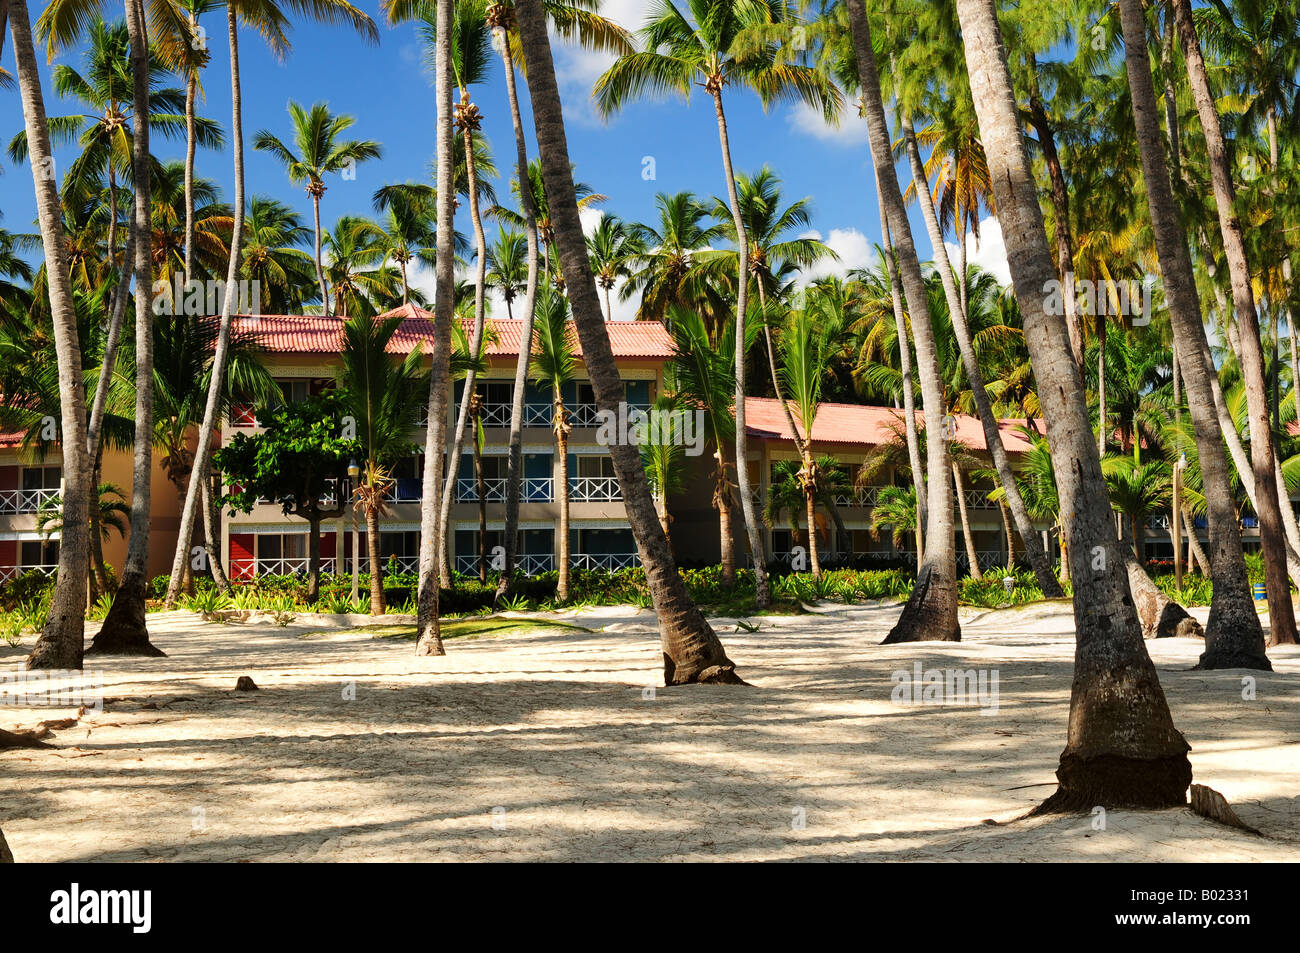 Luxury Hotel At Tropical Resort On Ocean Shore With Palm Trees Stock Photo Royalty Free Image